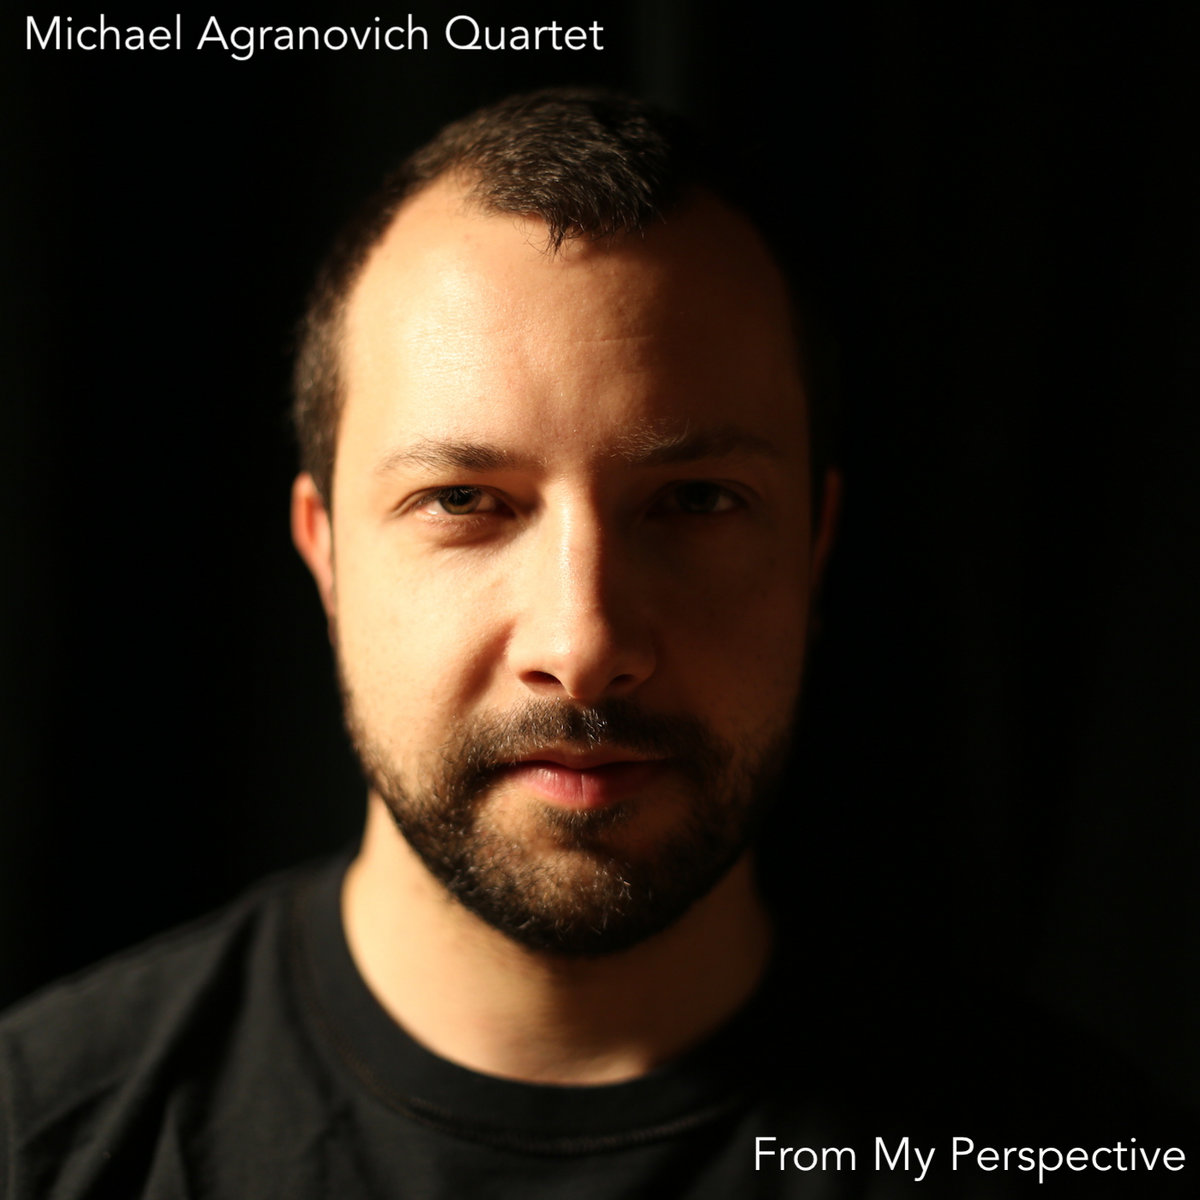 From My Perspective | Michael Agranovich